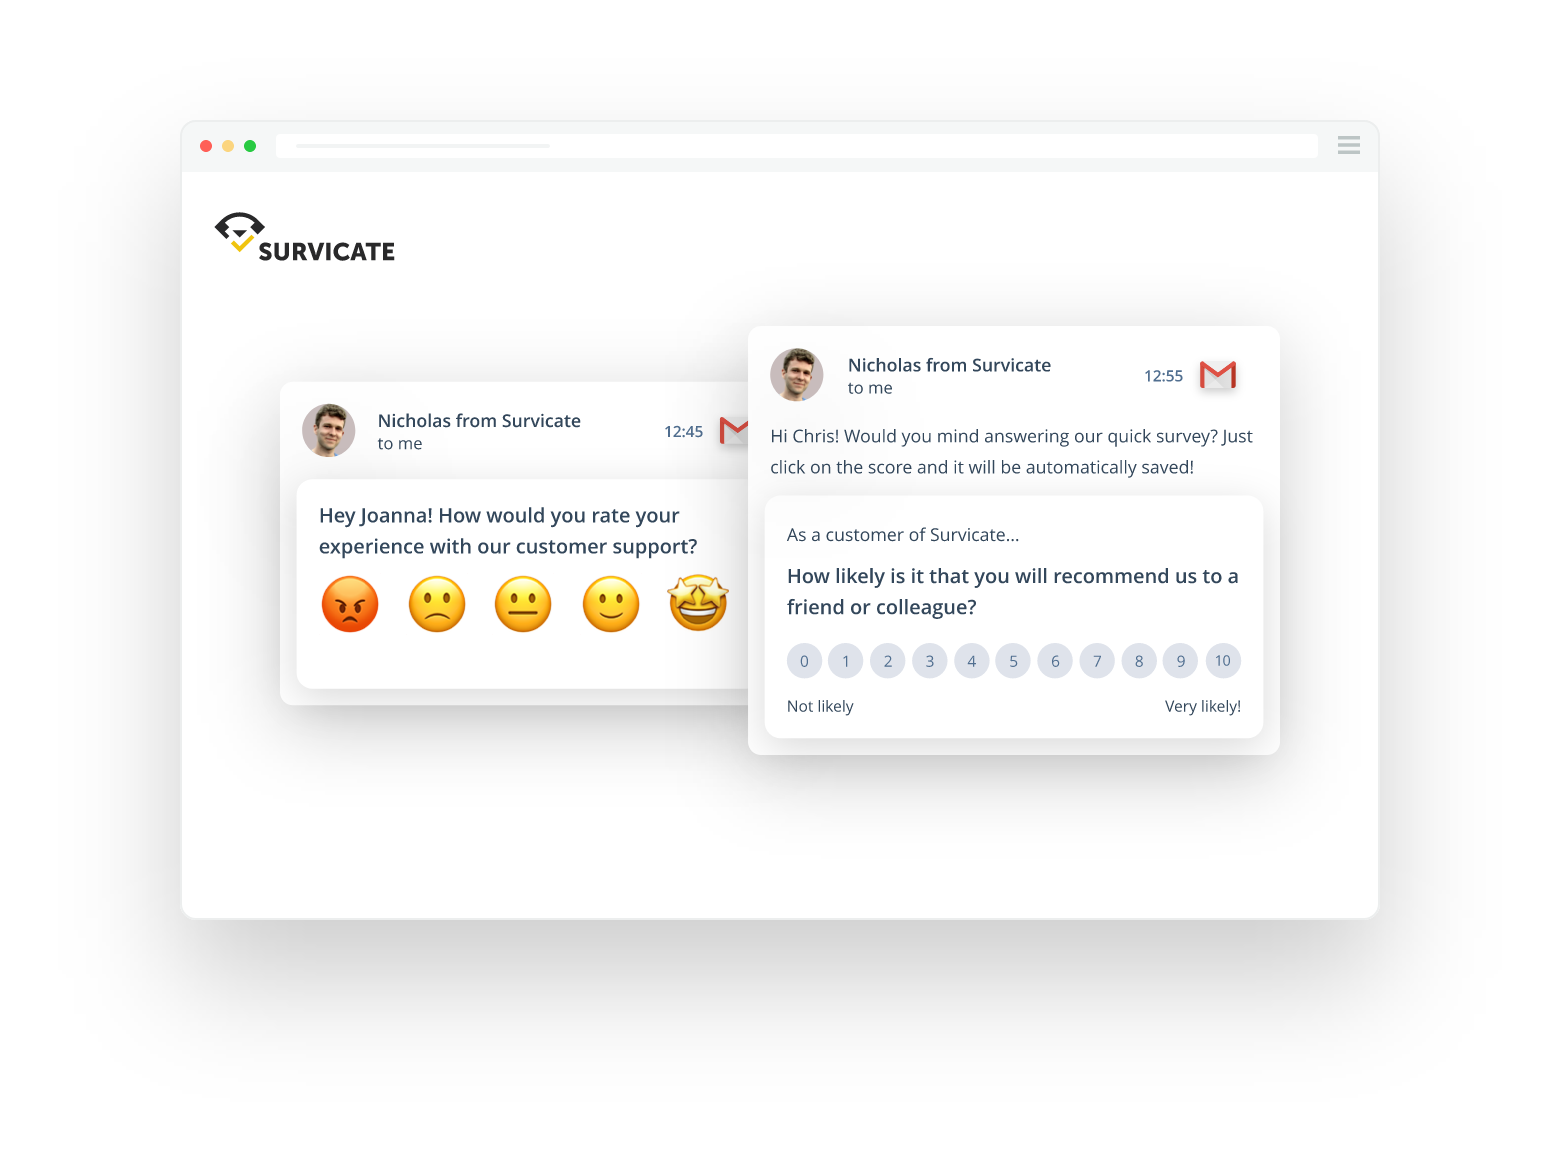 Email-embedded and link surveys, one of the method of collecting customer feedback